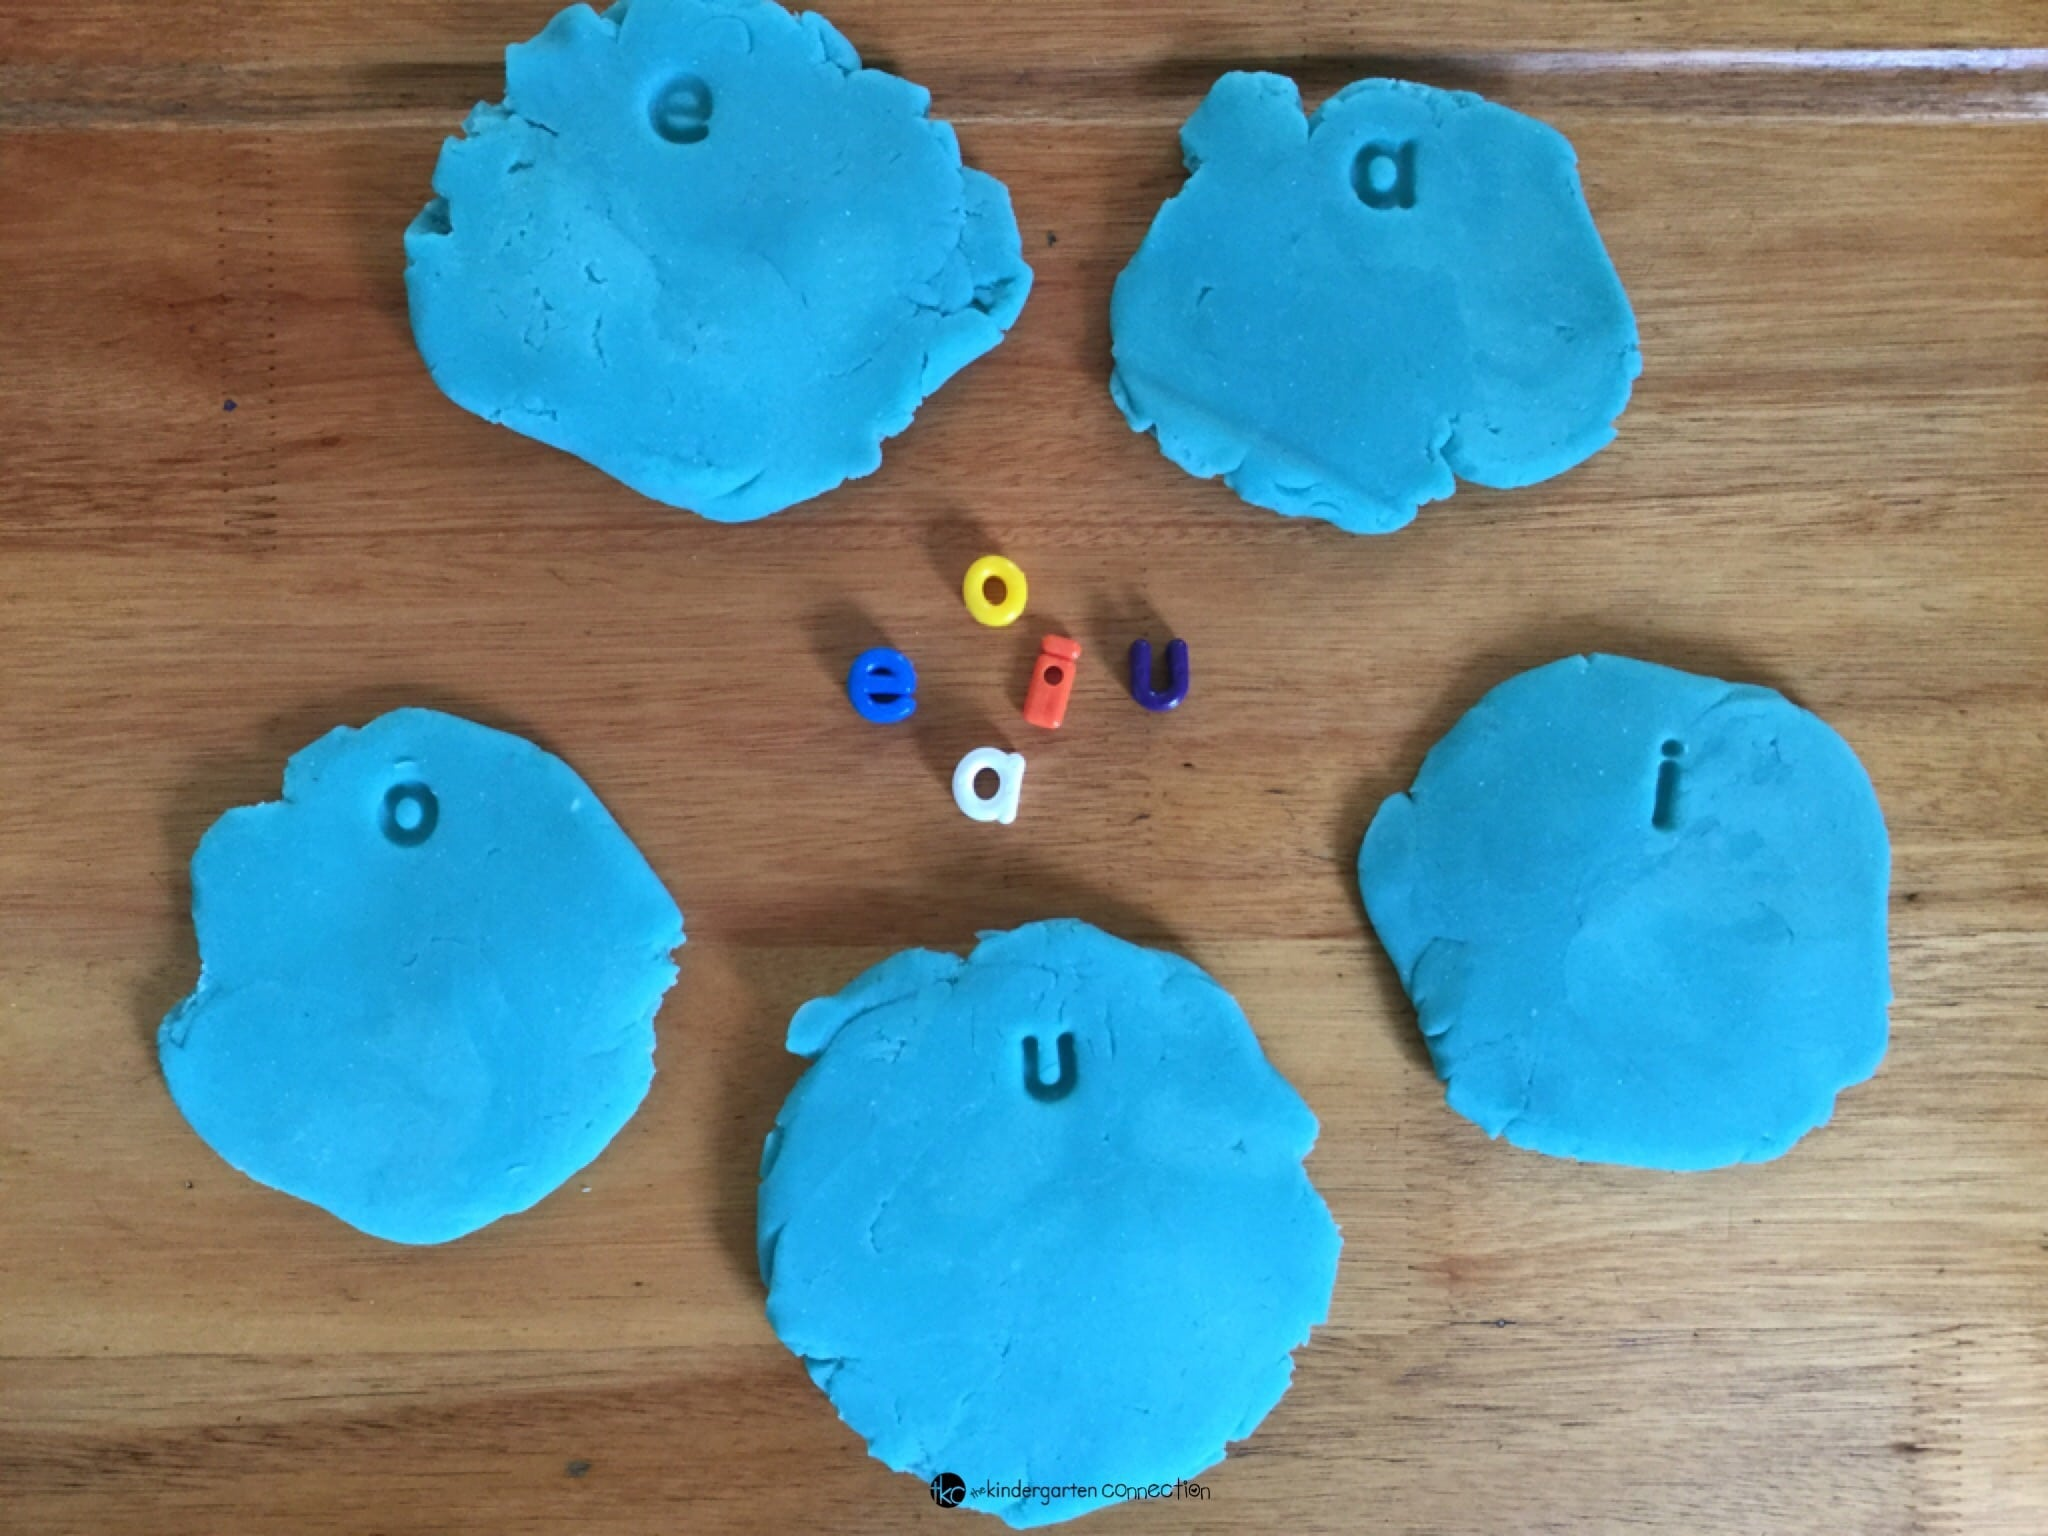 Playdough with letter beads provide all kinds of learning opportunities! We used playdough and letter beads to make clouds, imprinting and sorting vowels.